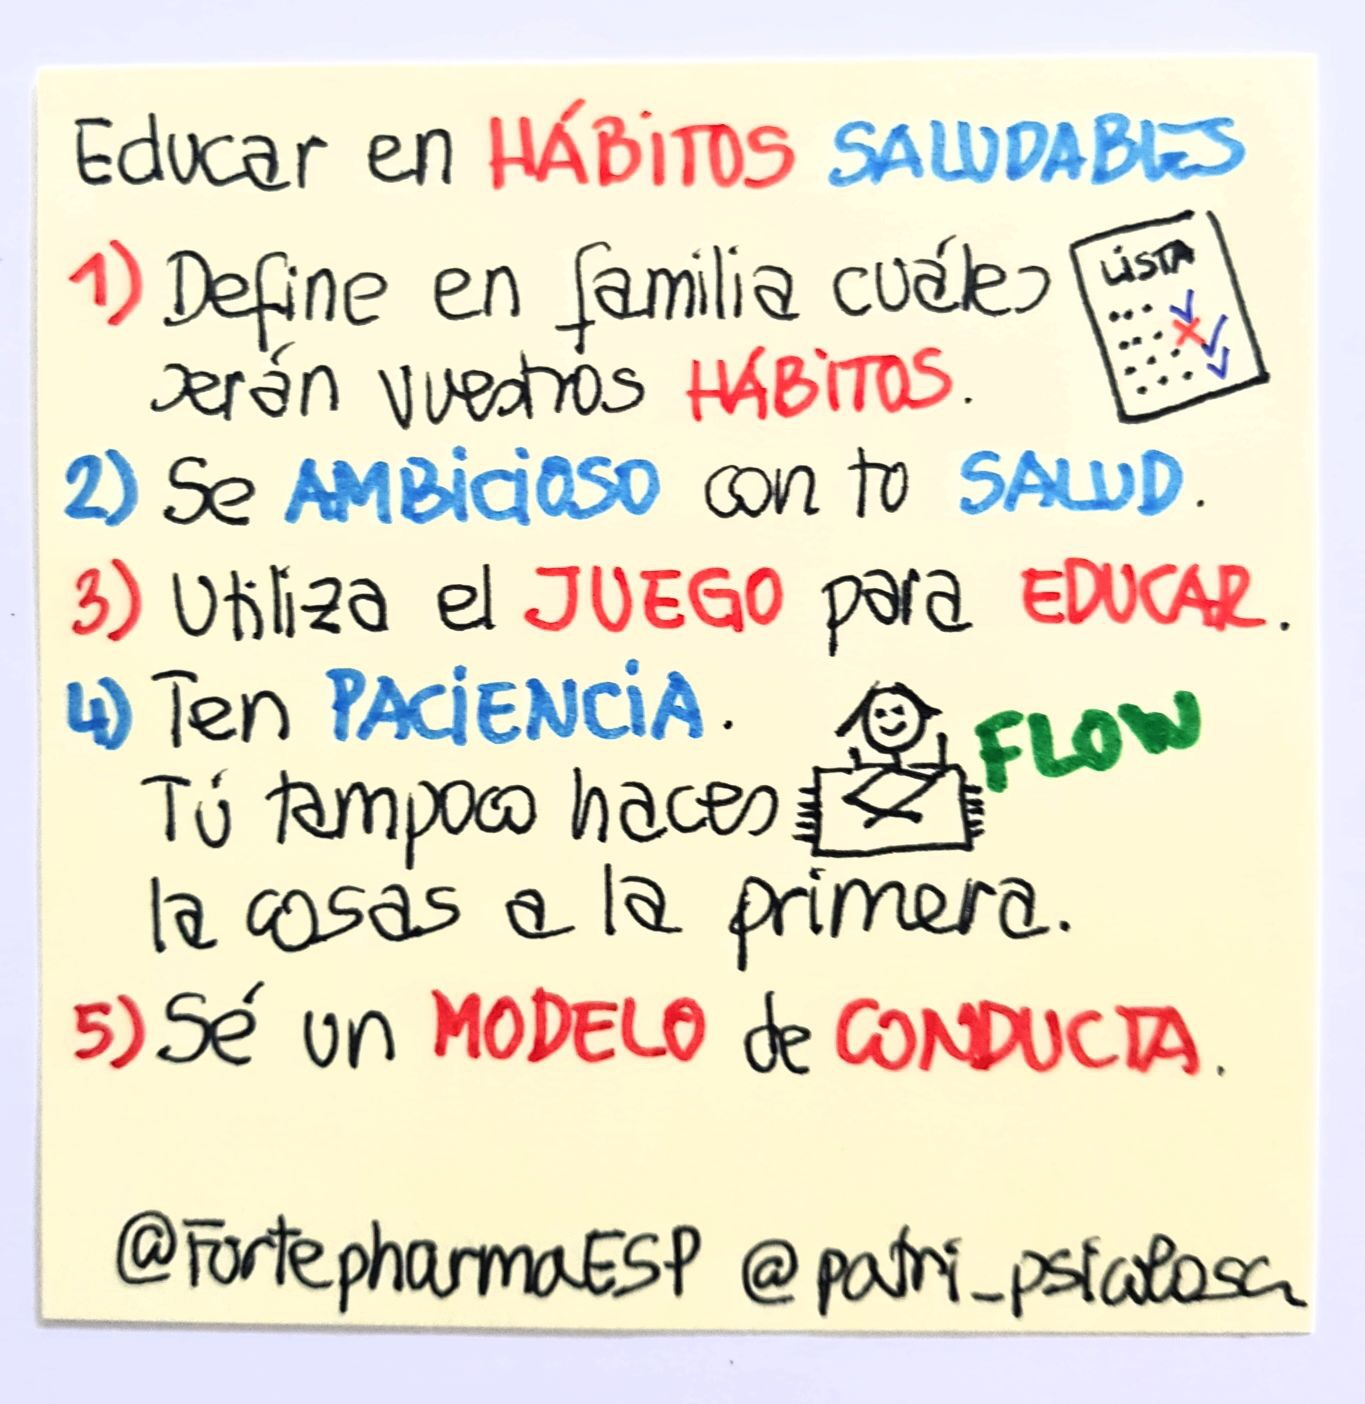 Educar en hábitos saludables